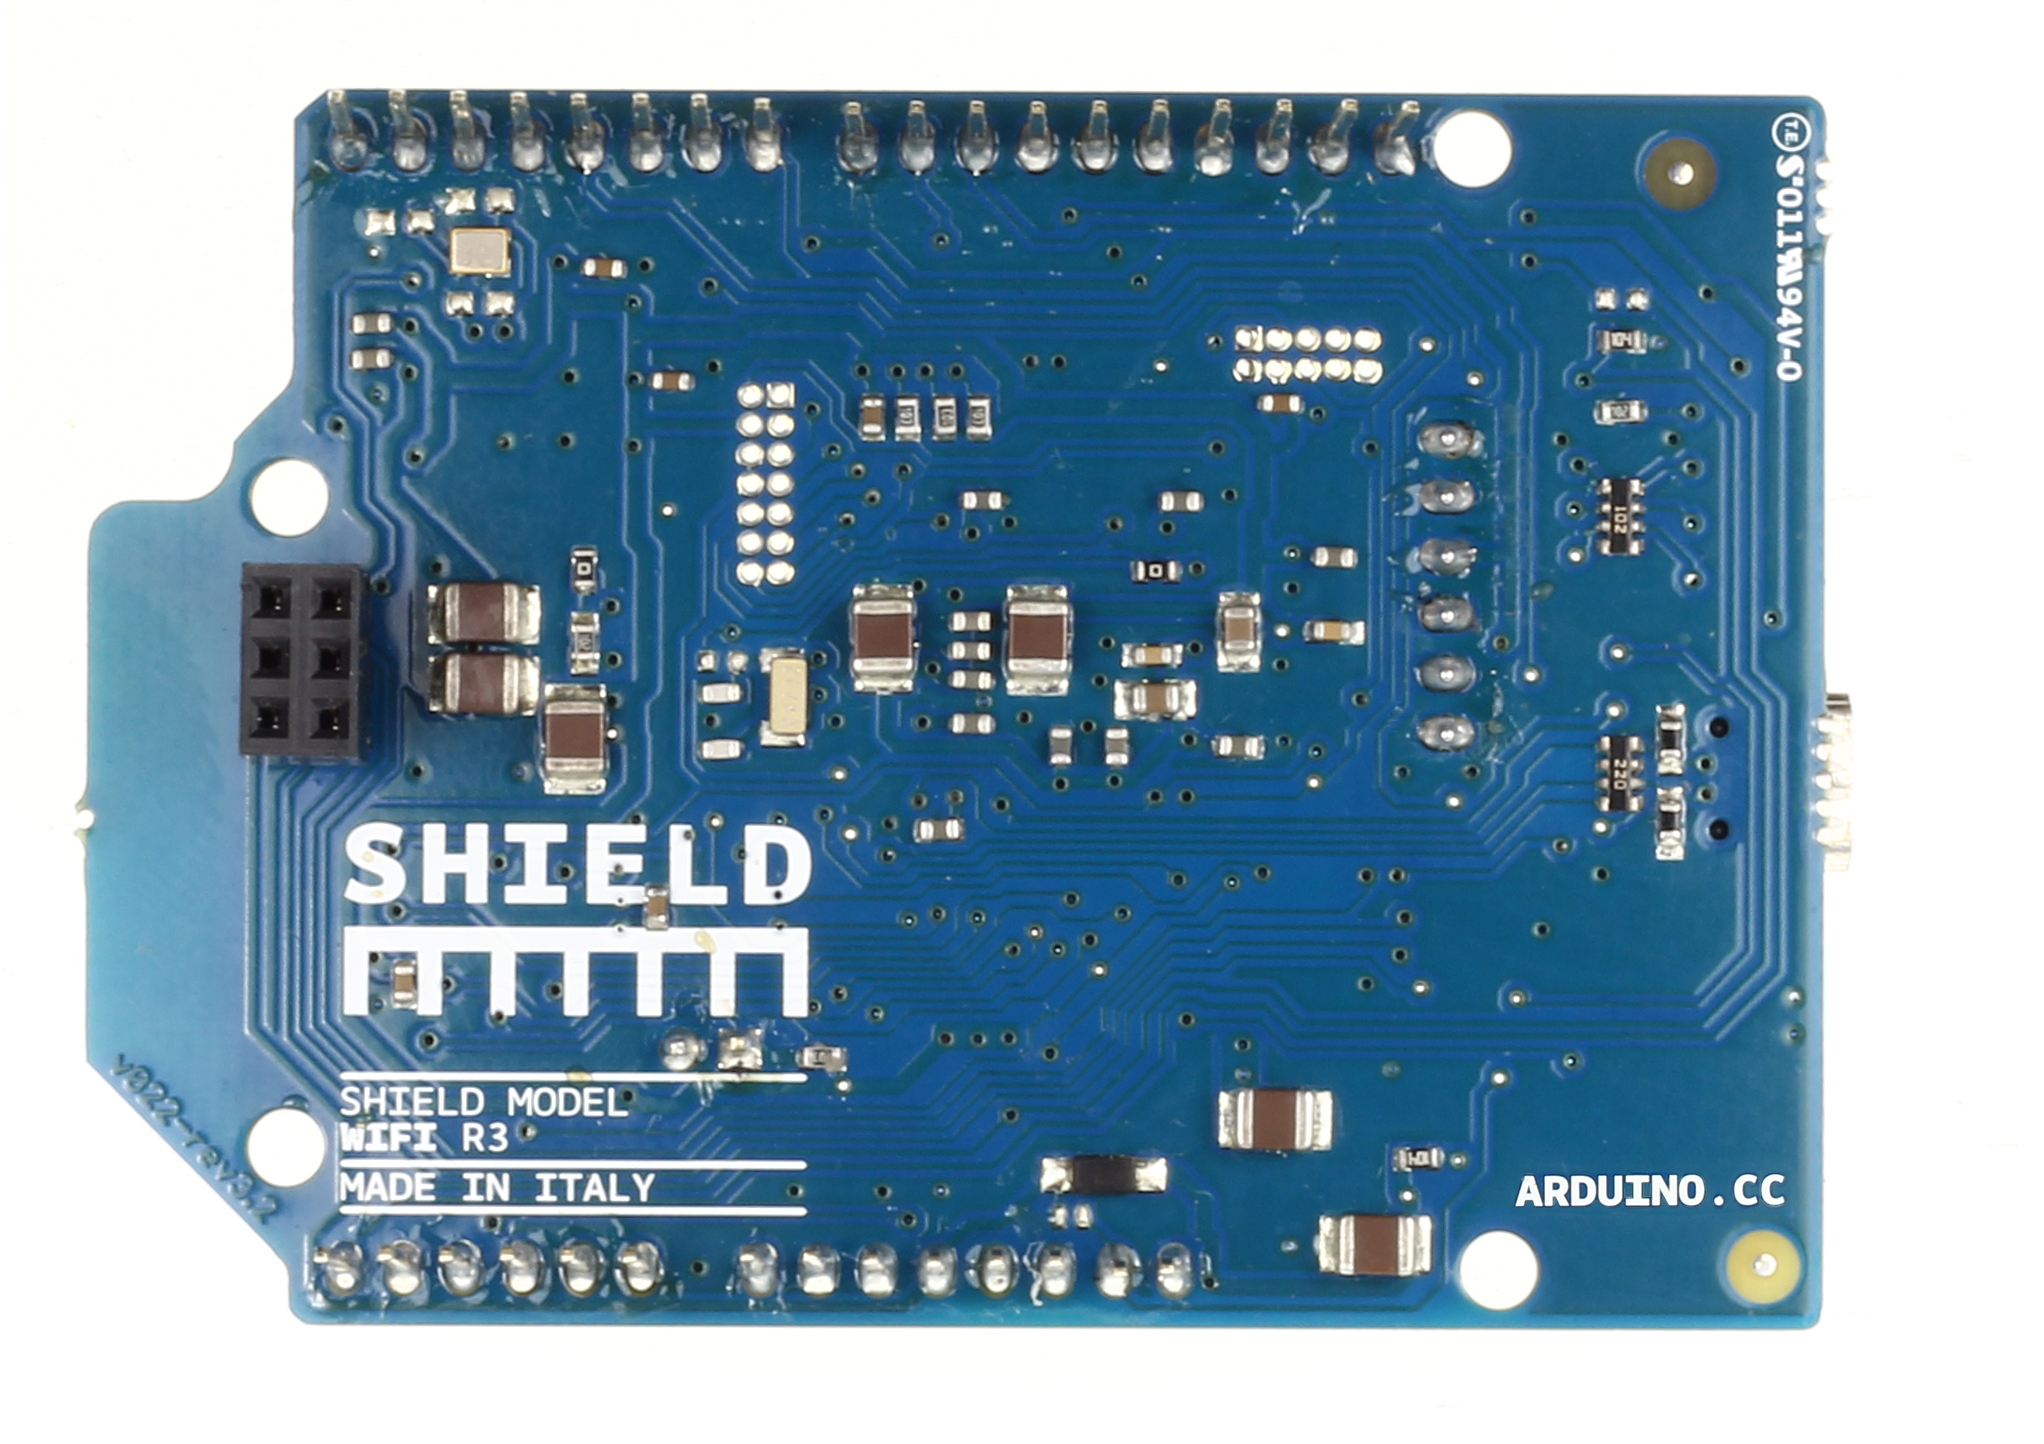 Picture of Wifi Shield - Whats It? (skip If You Know)